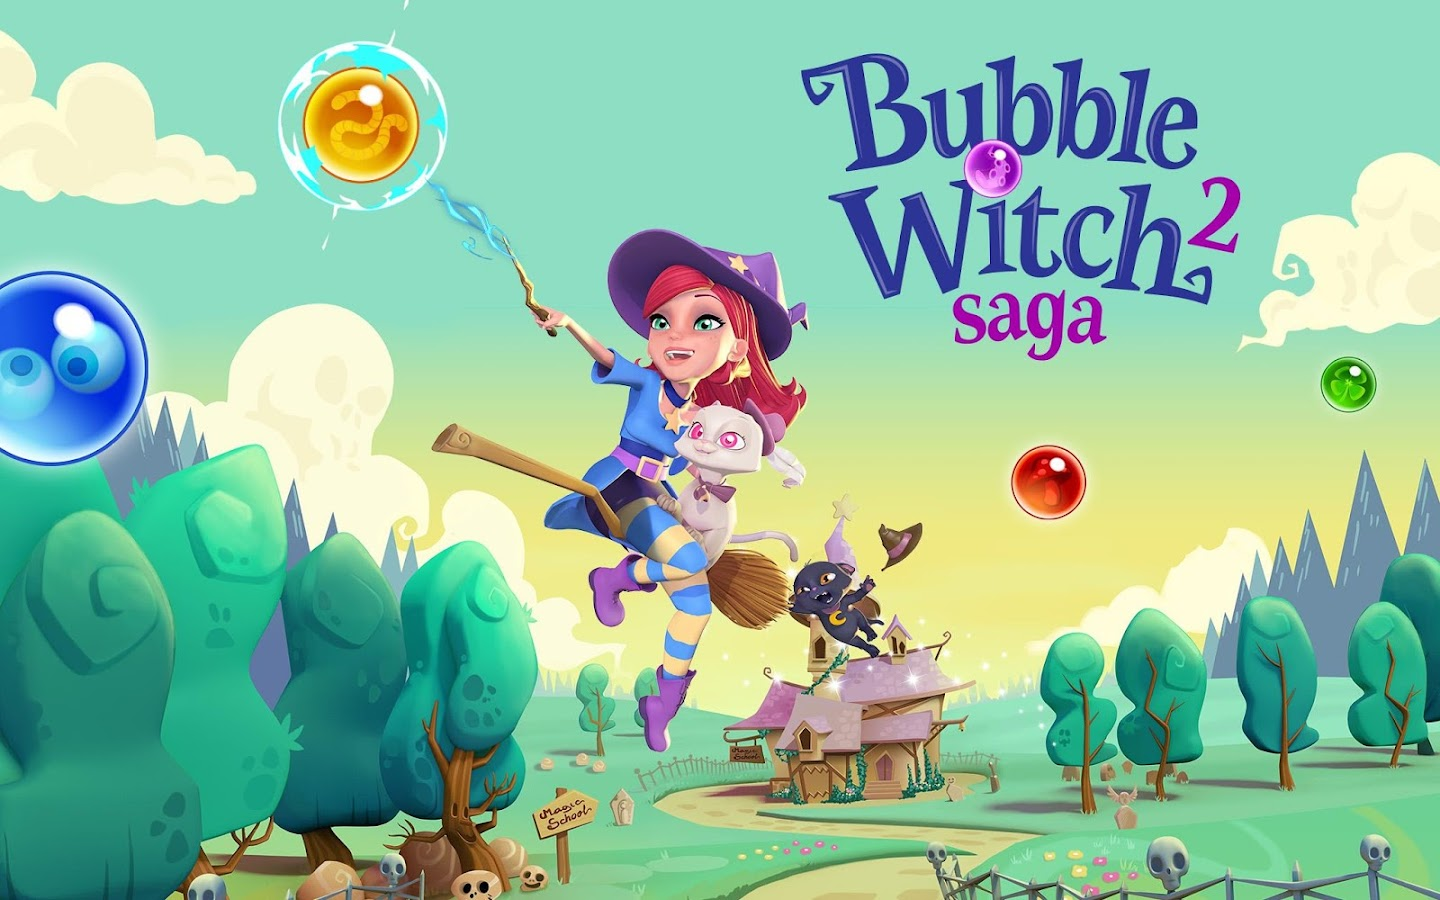 Bubble-Witch-2-Saga 28